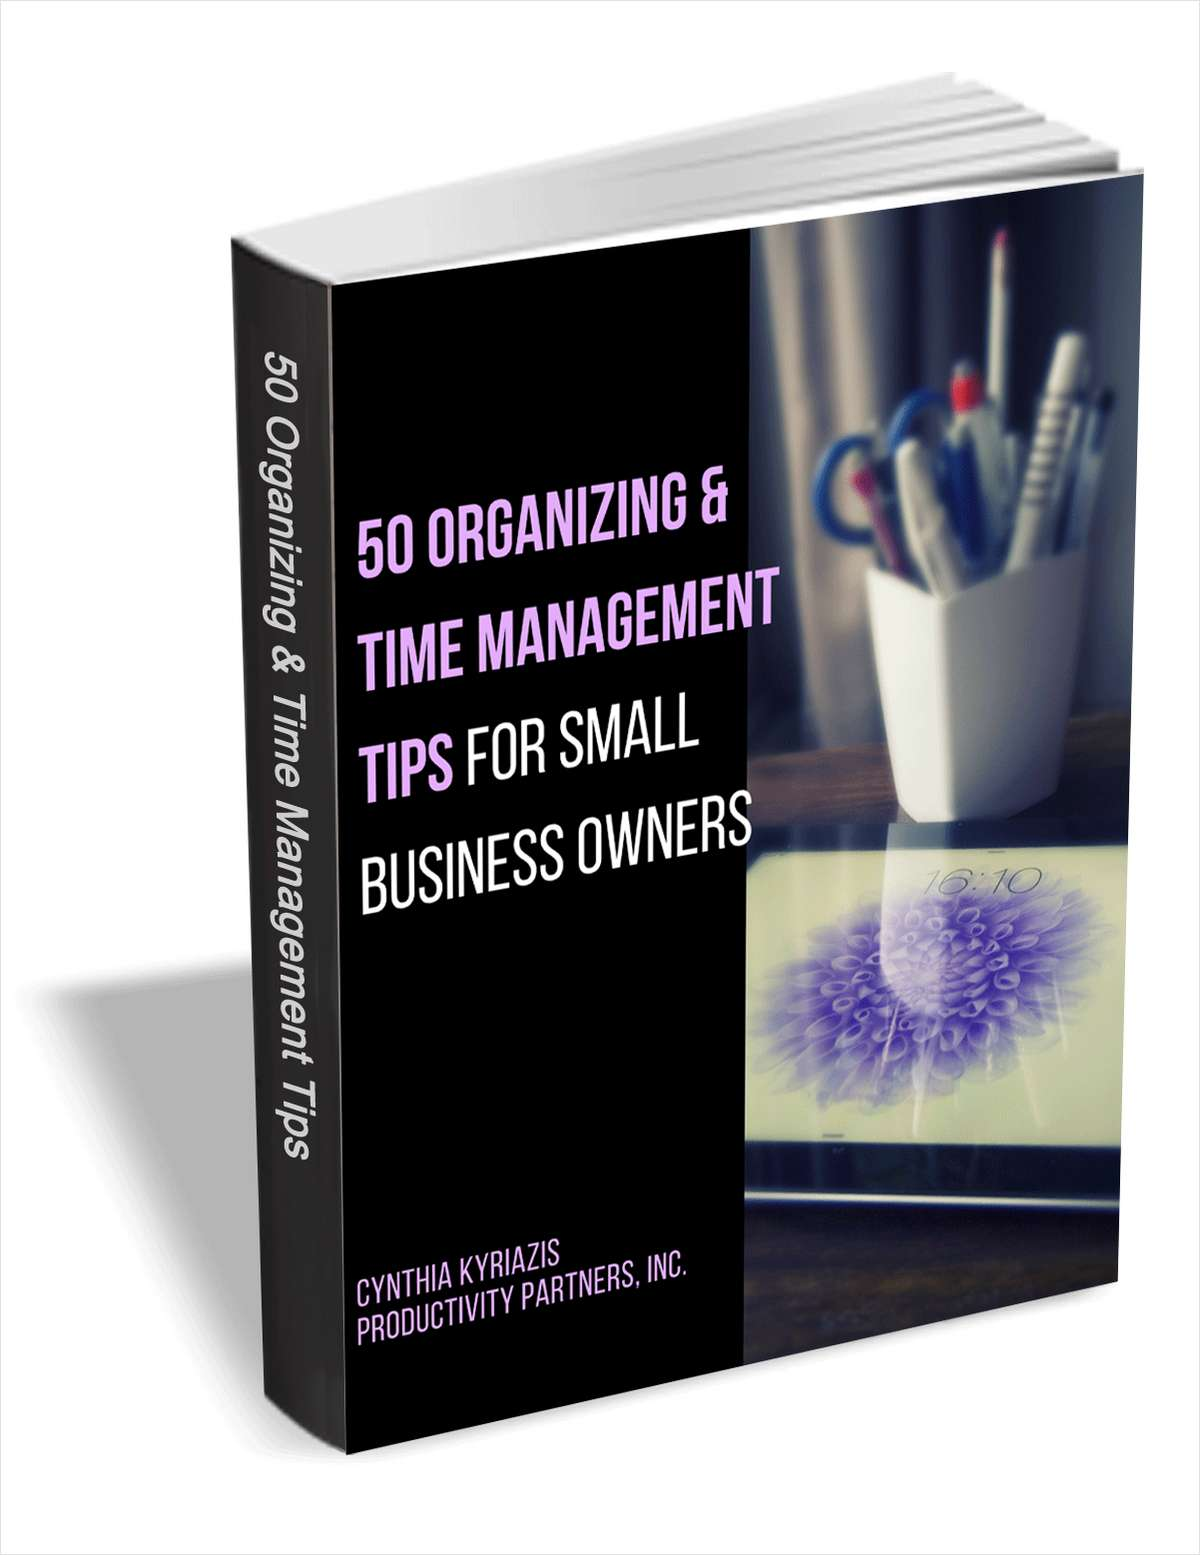 50 Organizing & Time Management Tips for Small Business Owners